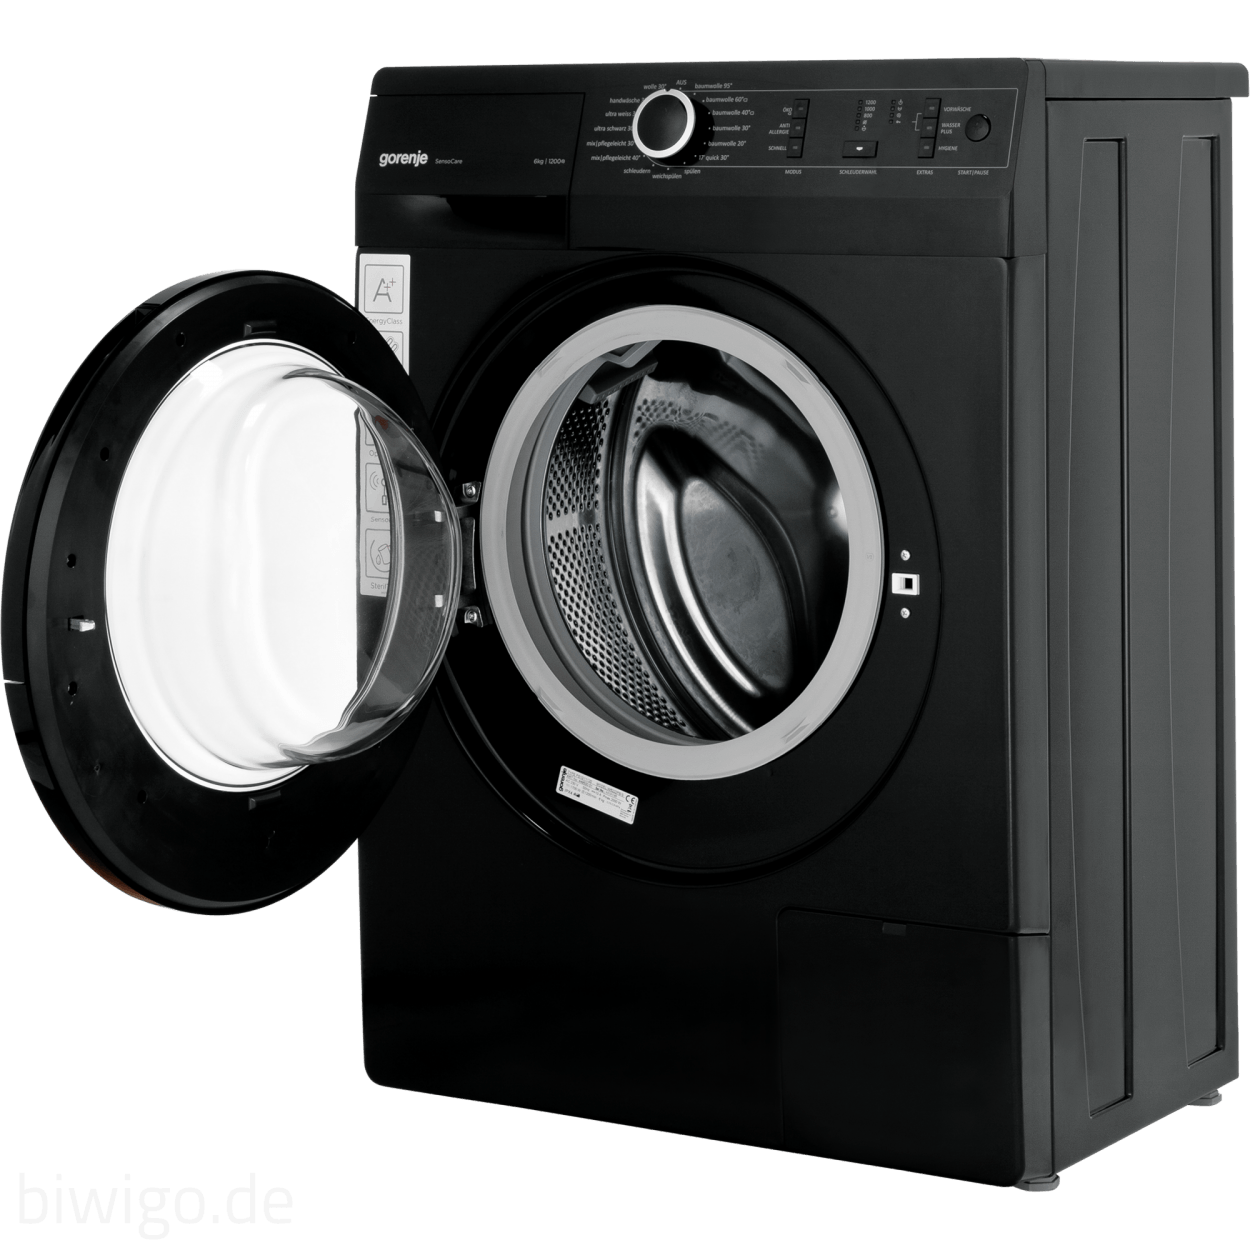 gorenje w6222pb s a 6 kg keskeny el lt lt s mos g p 1200 p. Black Bedroom Furniture Sets. Home Design Ideas